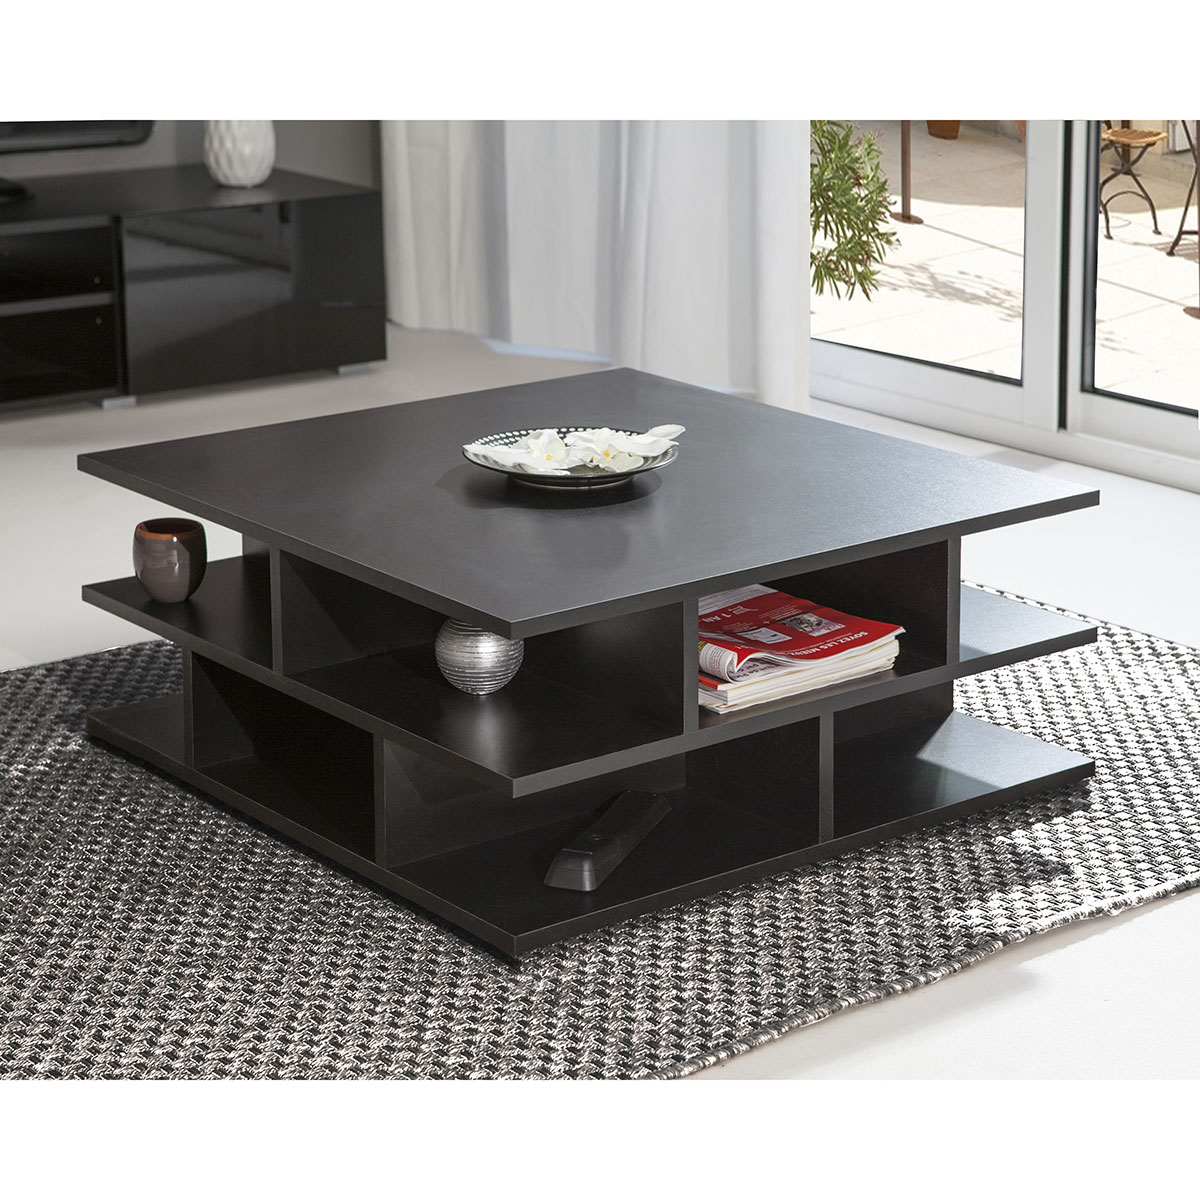 Achat table basse pas cher